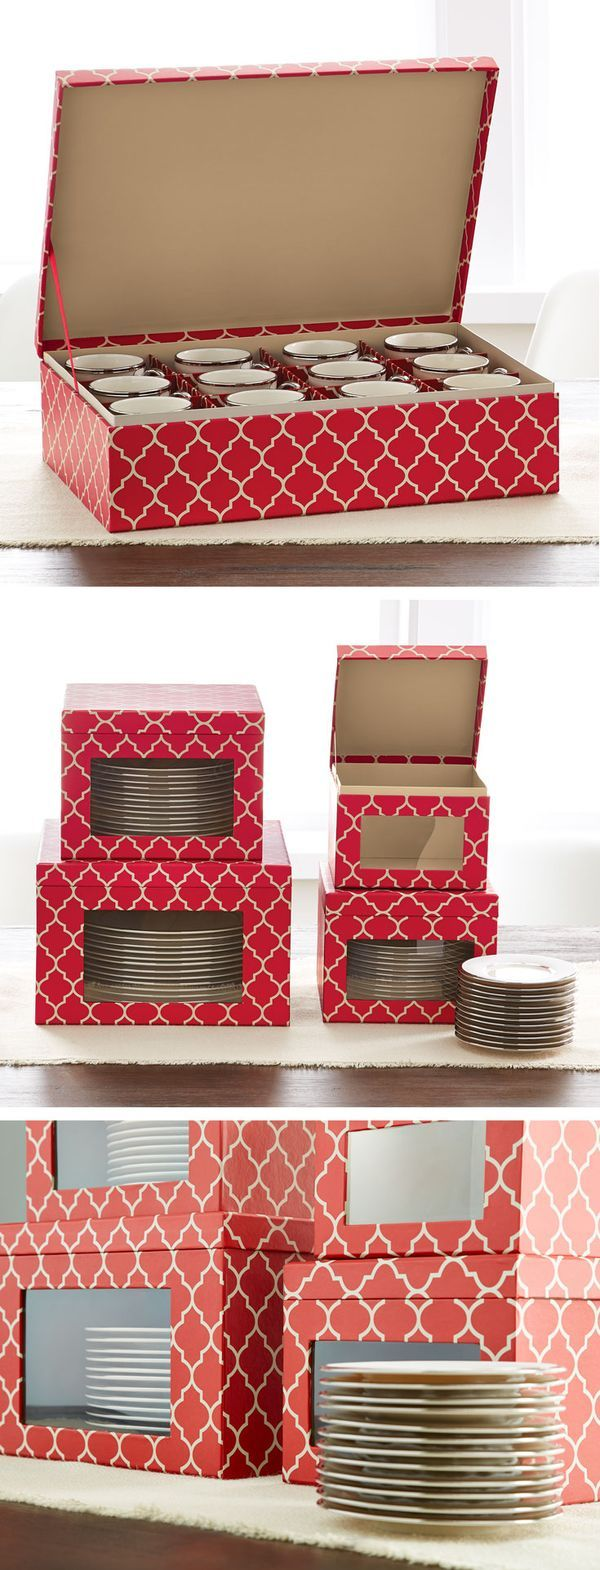 Our Holiday Dinnerware Storage Cases protect your china from year to year. And youu0027ll love the viewing window that lets you see whatu0027s stored inside! & Our Holiday Dinnerware Storage Cases protect your china from year to ...